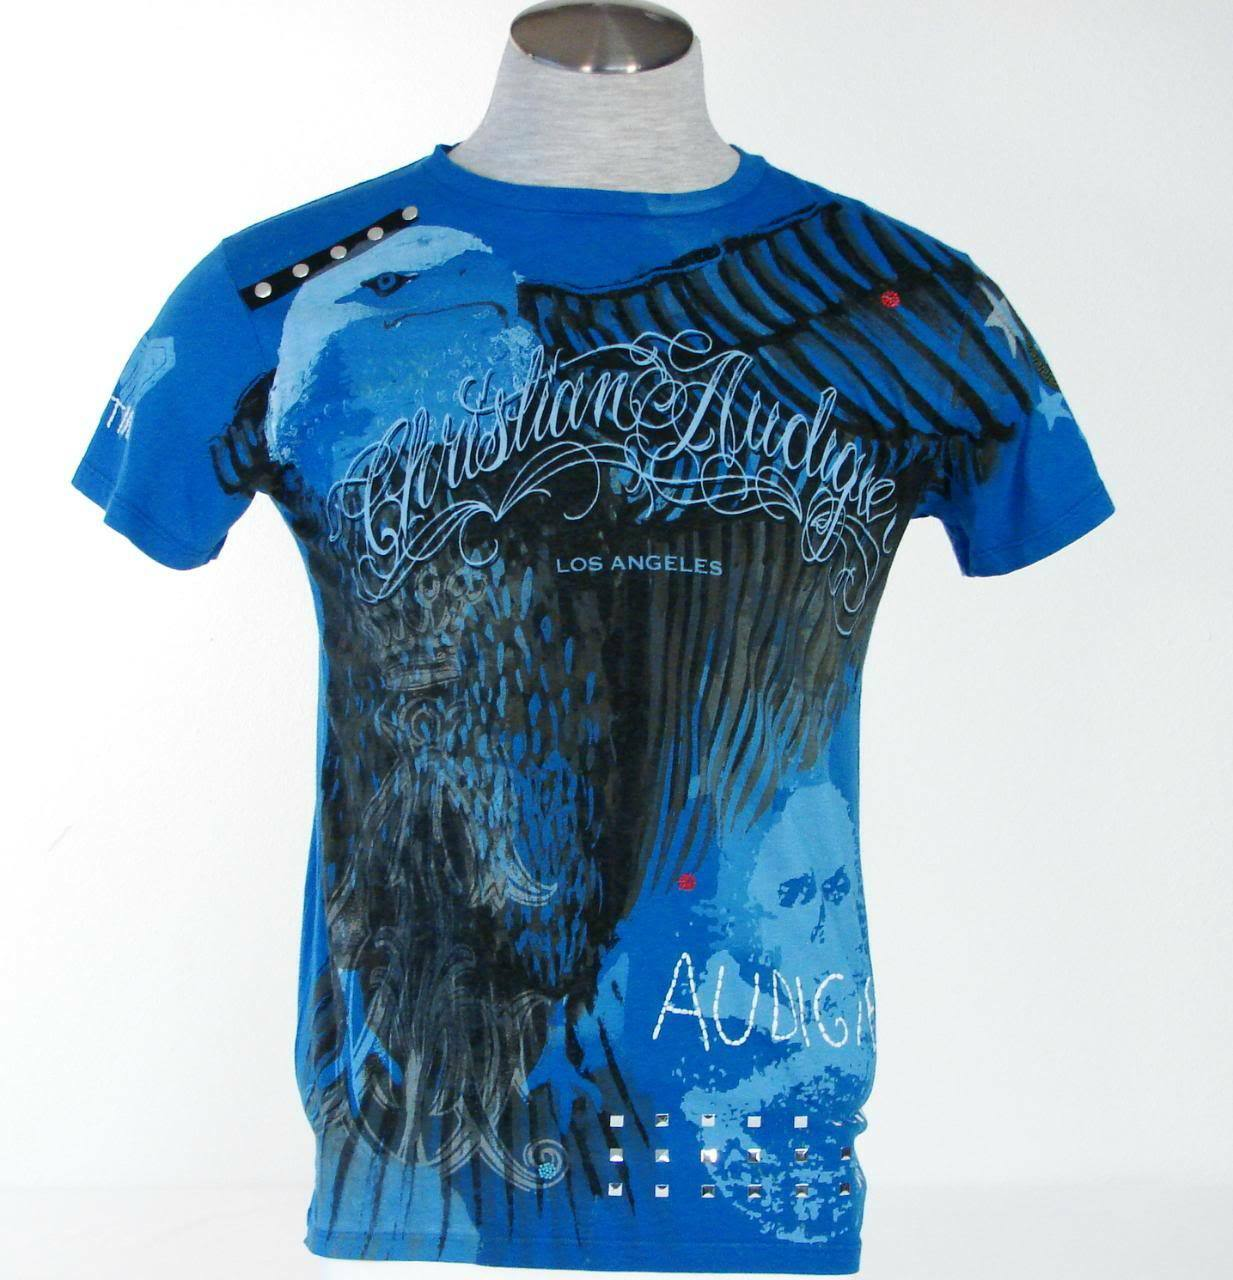 Christian Audigier bluee Tattoo Graphic Rhinestone Tee Shirt Men's Small S NEW